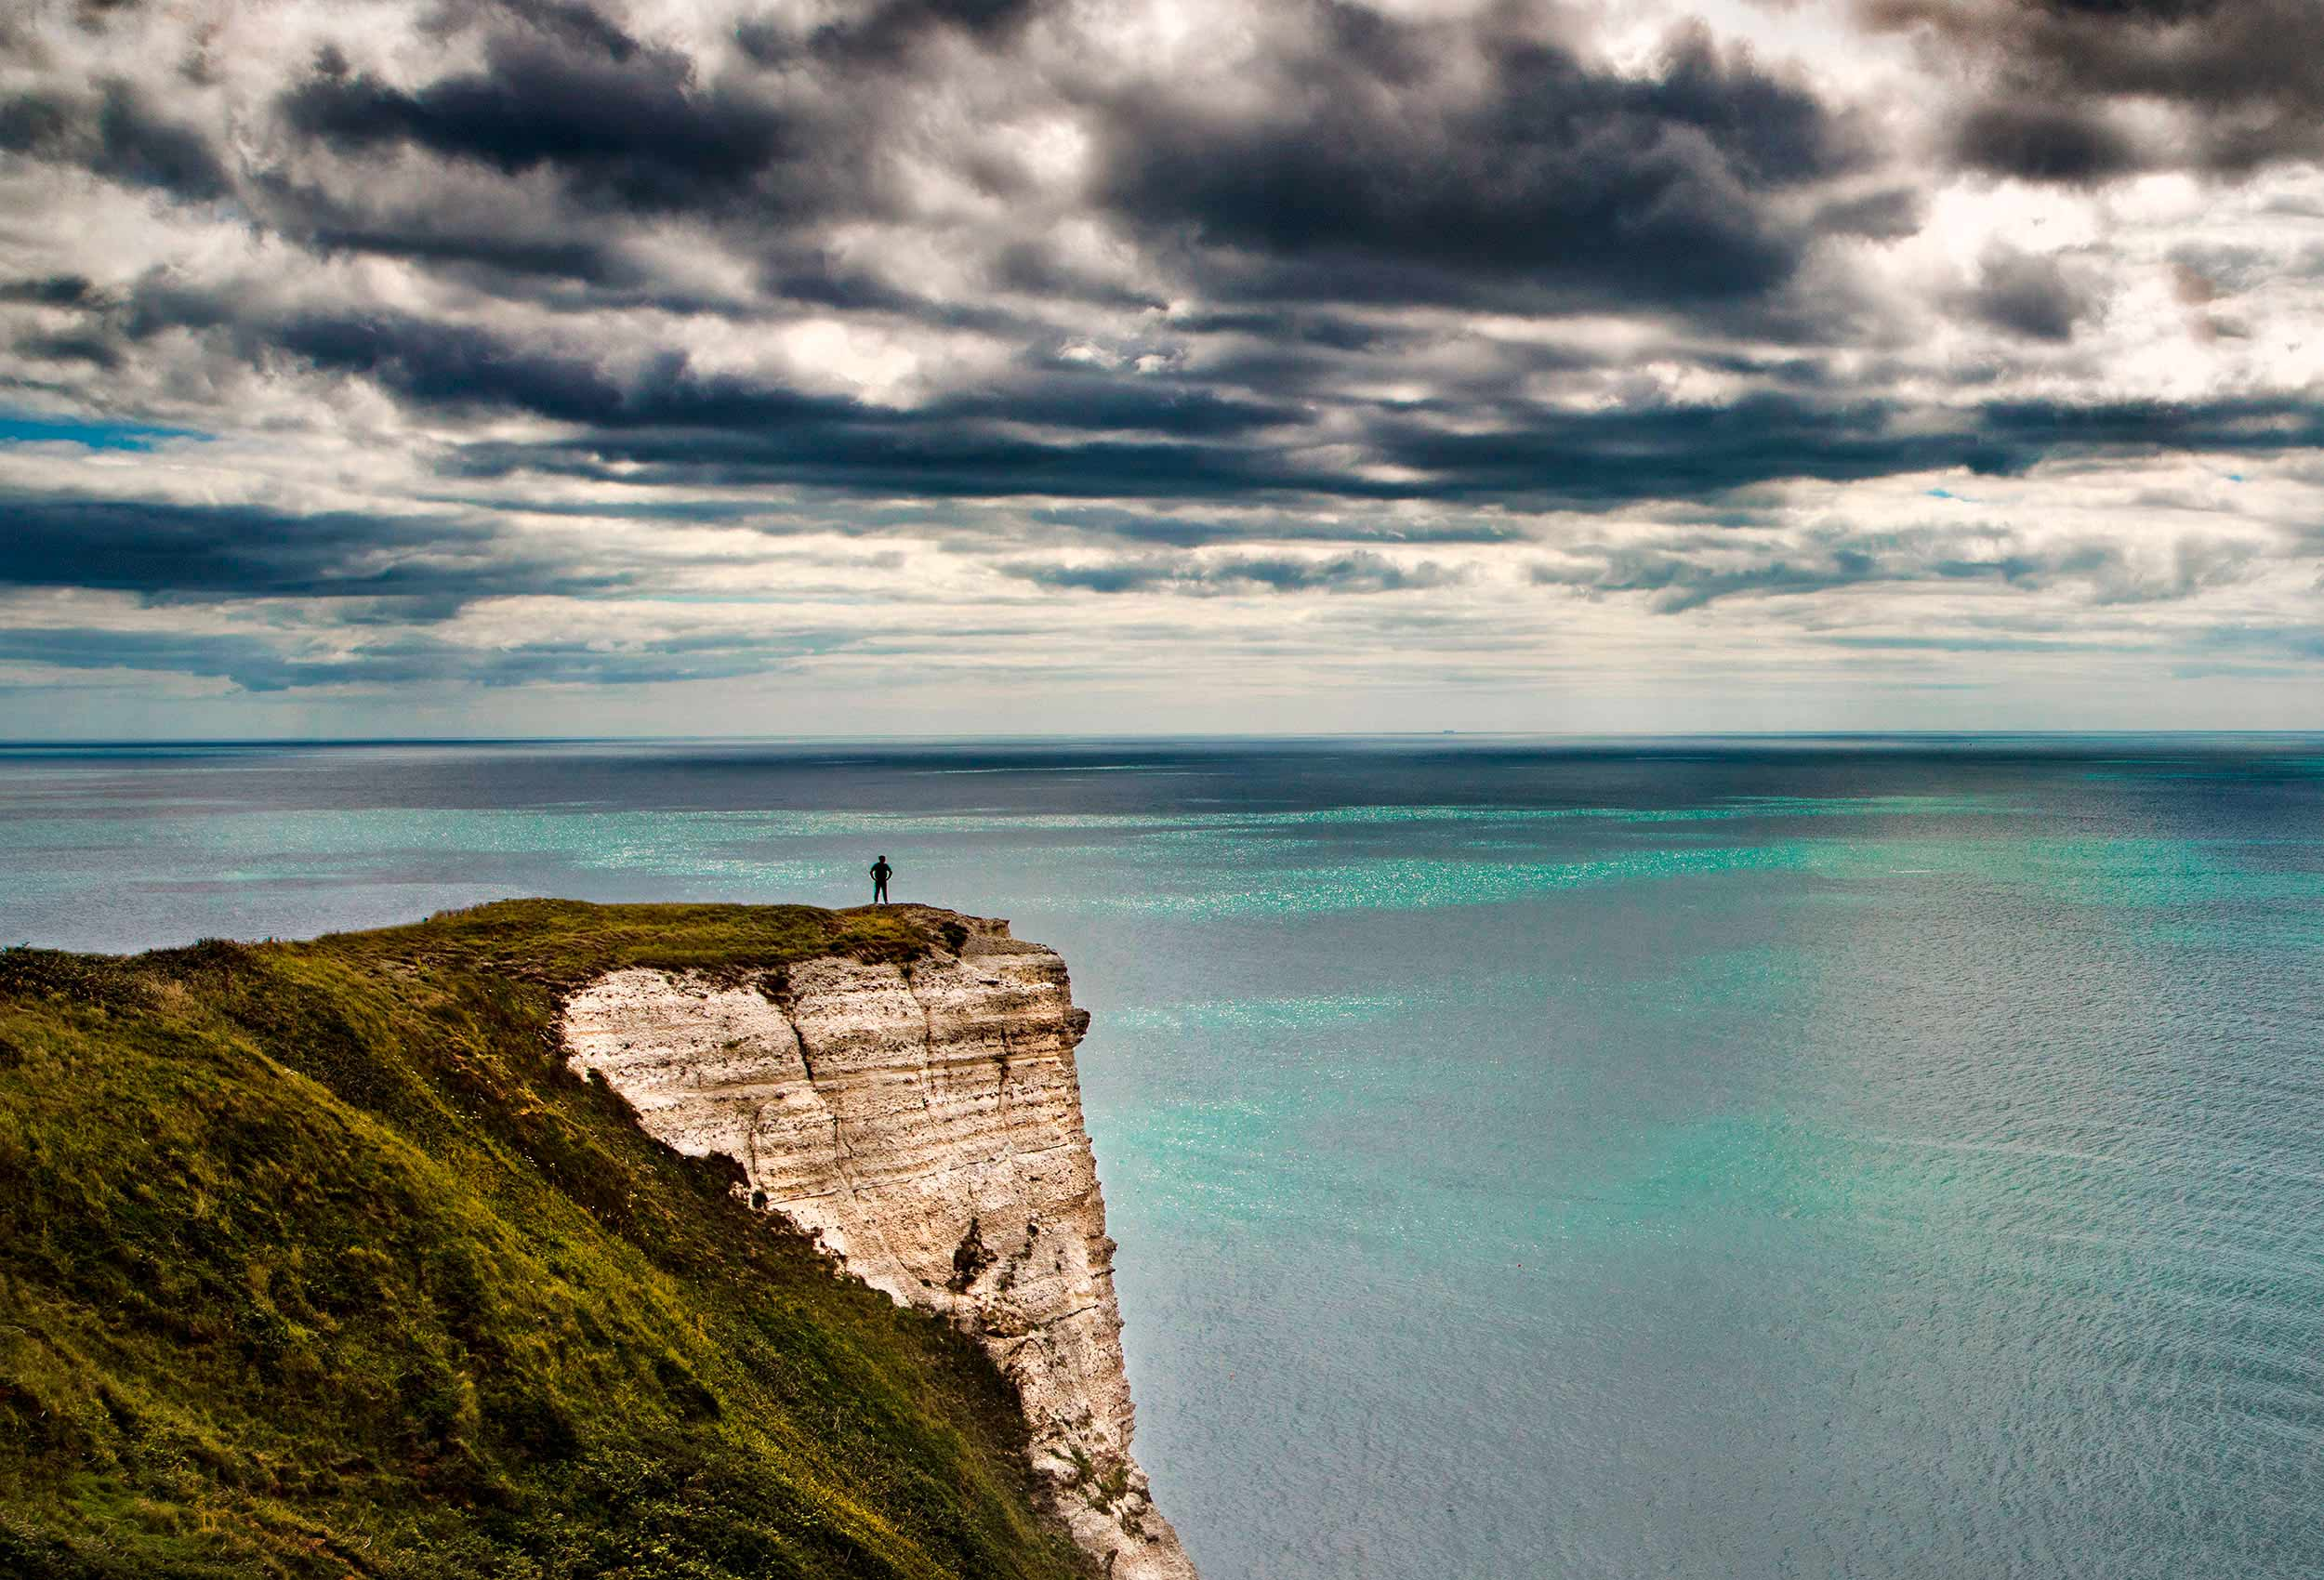 A man on a cliff on the Jurassic Coast in Devonshire by Top Travel Photographer John Hryniuk